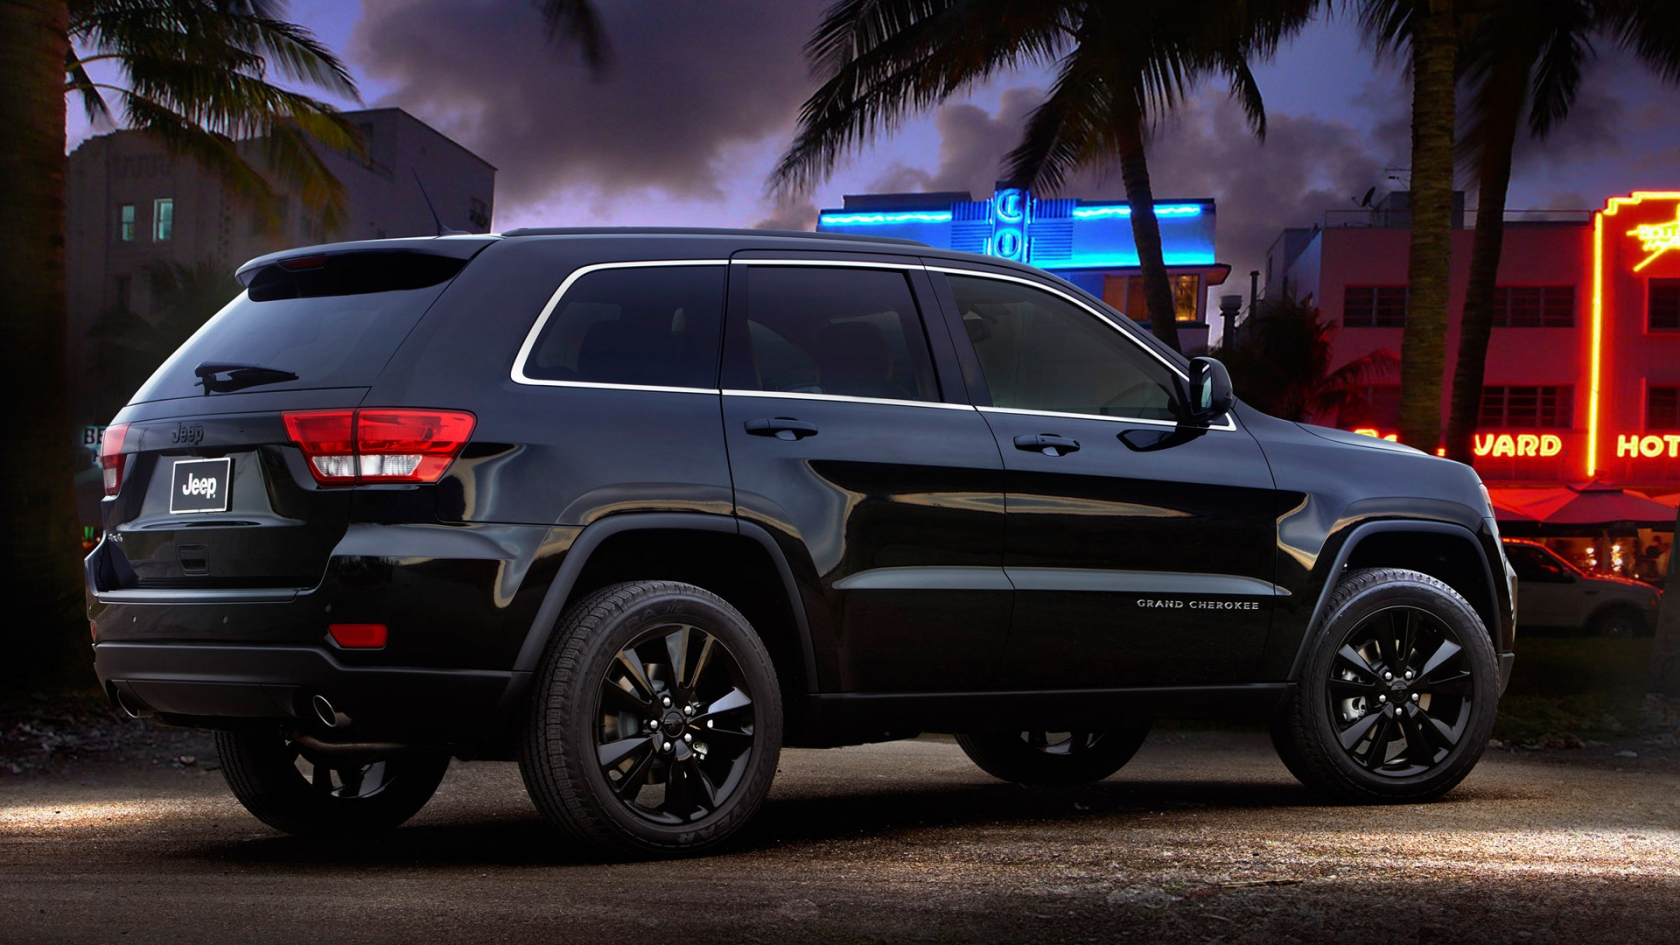 Jeep Grand Cherokee Rear Concept for 1680 x 945 HDTV resolution